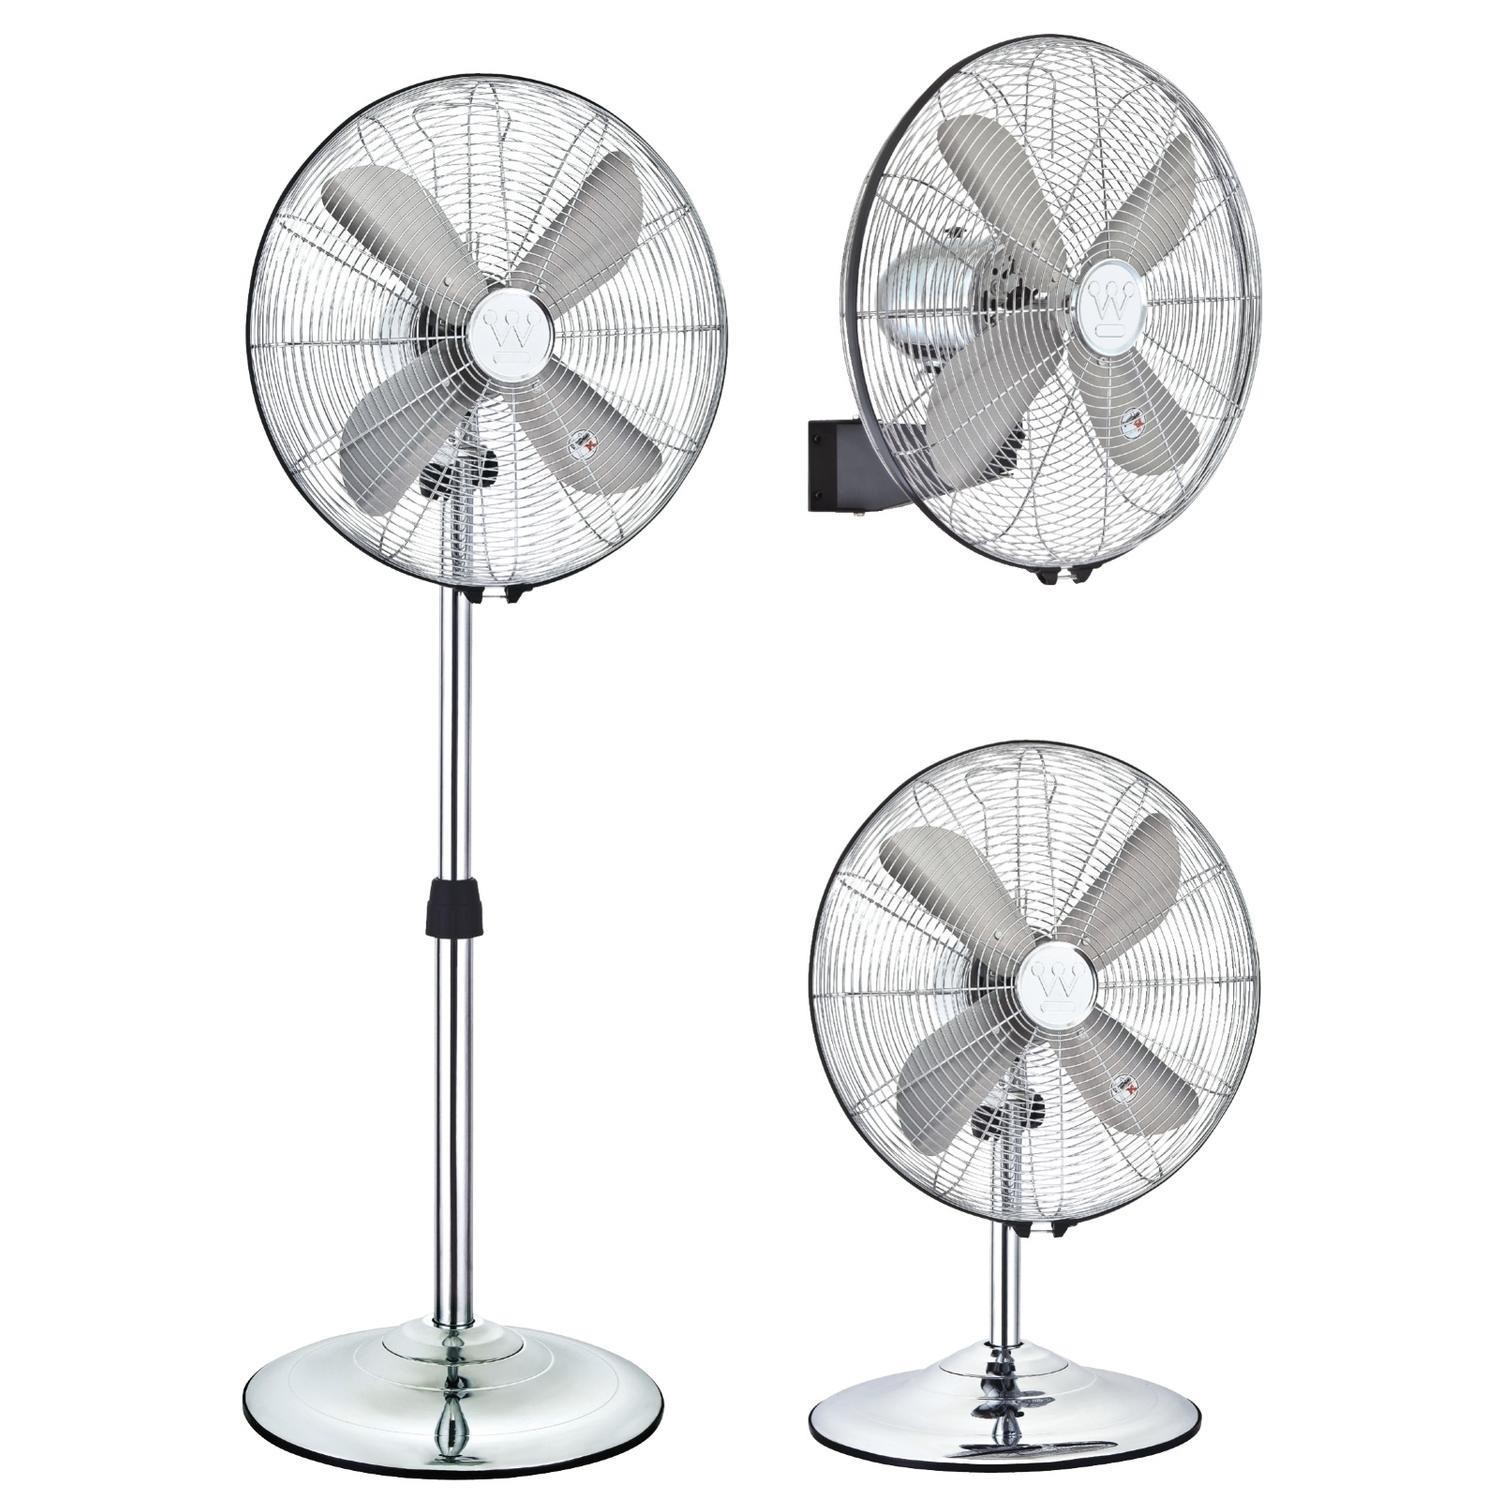 pedestal xxx oscillating product do fan white